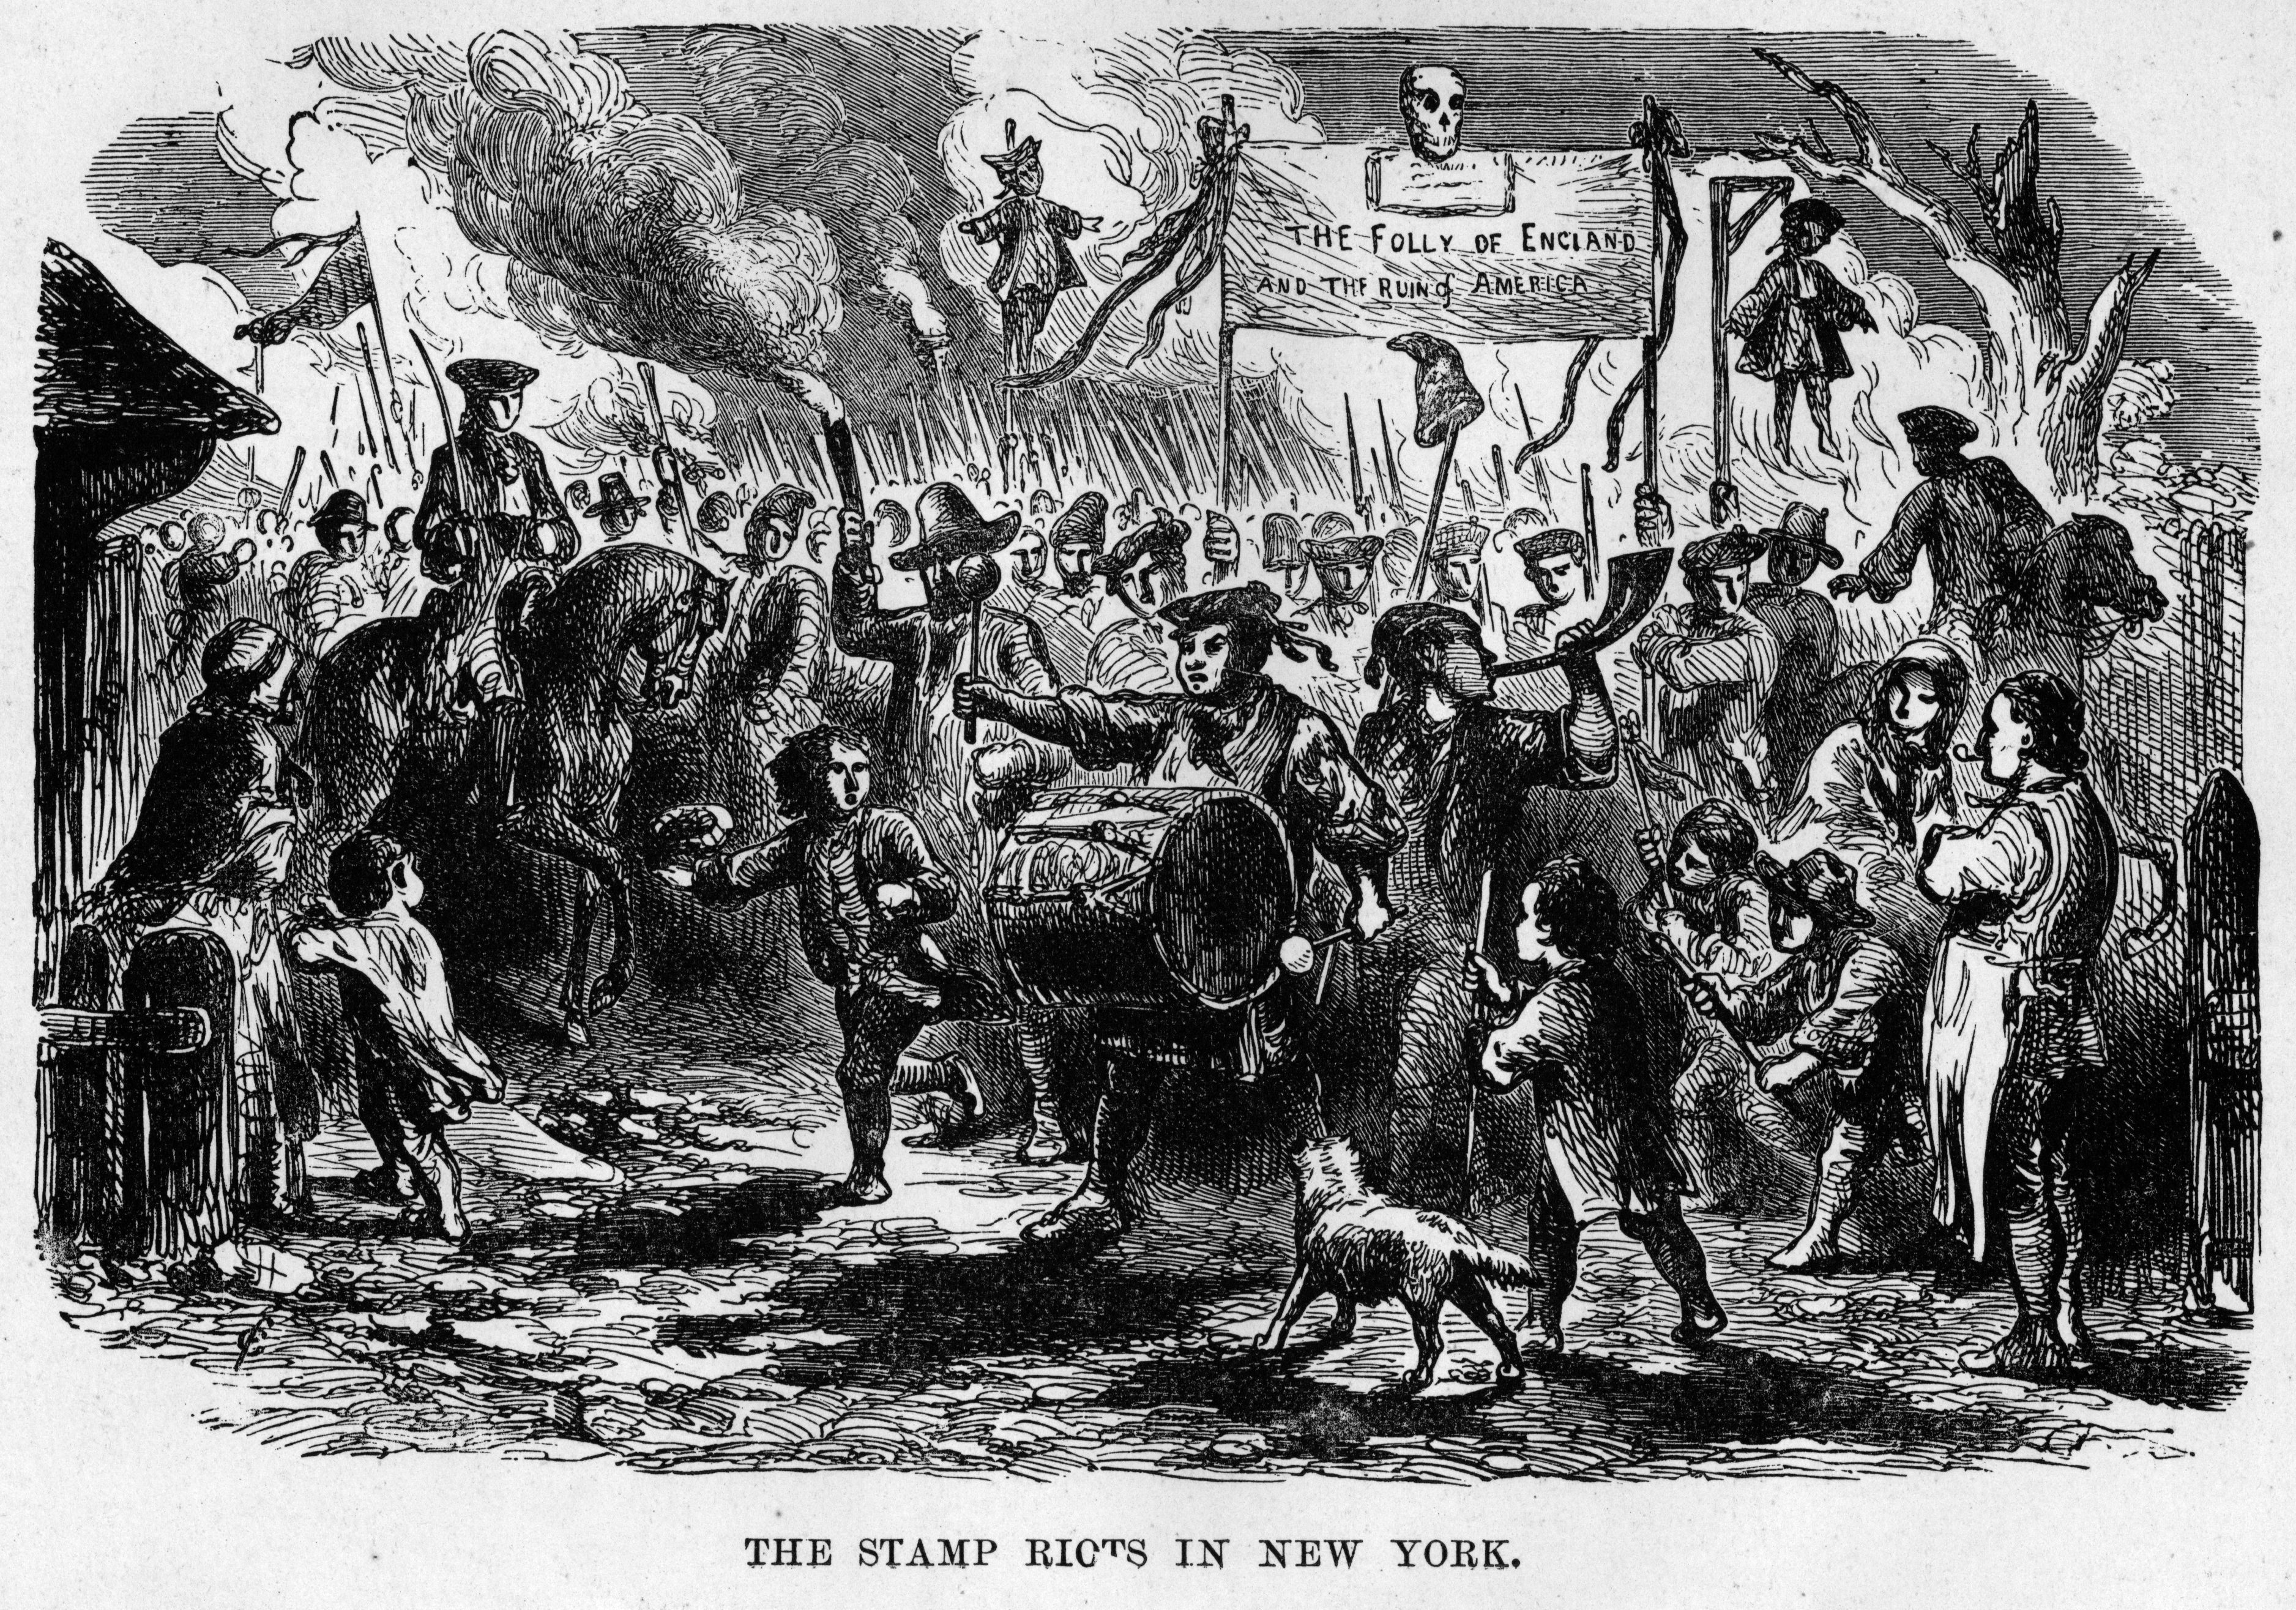 An illustration depicting a group of rioting colonists protesting against the Stamp Act.